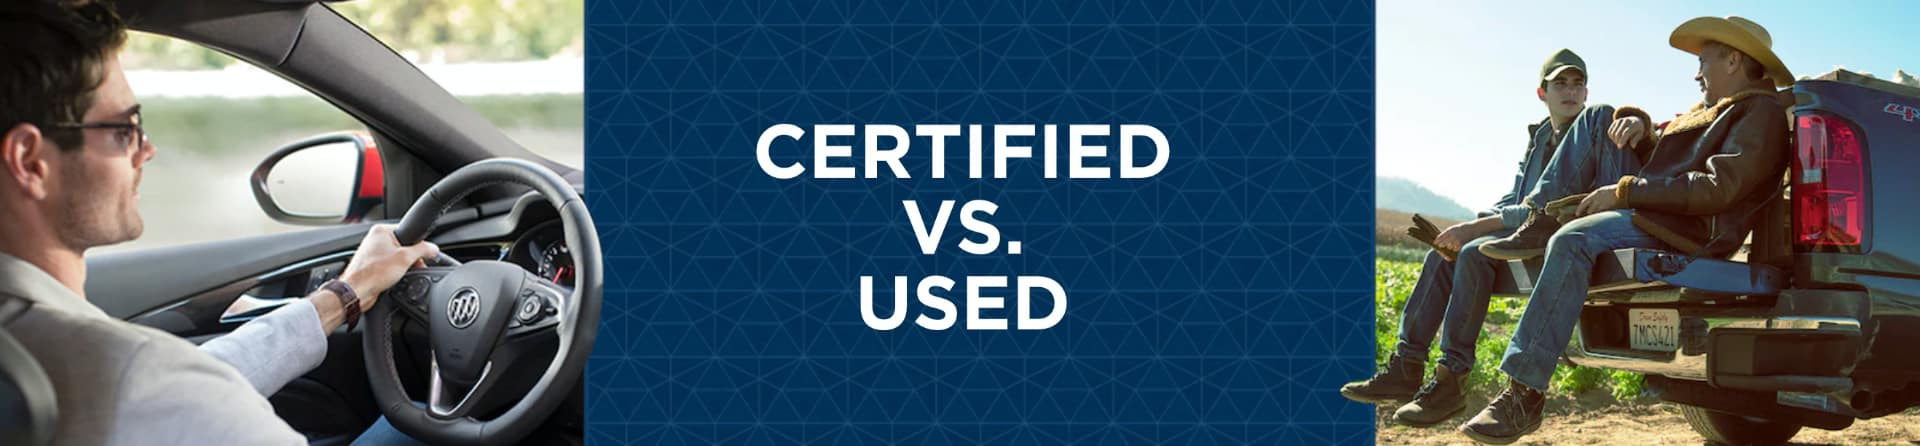 Benefits of Certified Pre-Owned